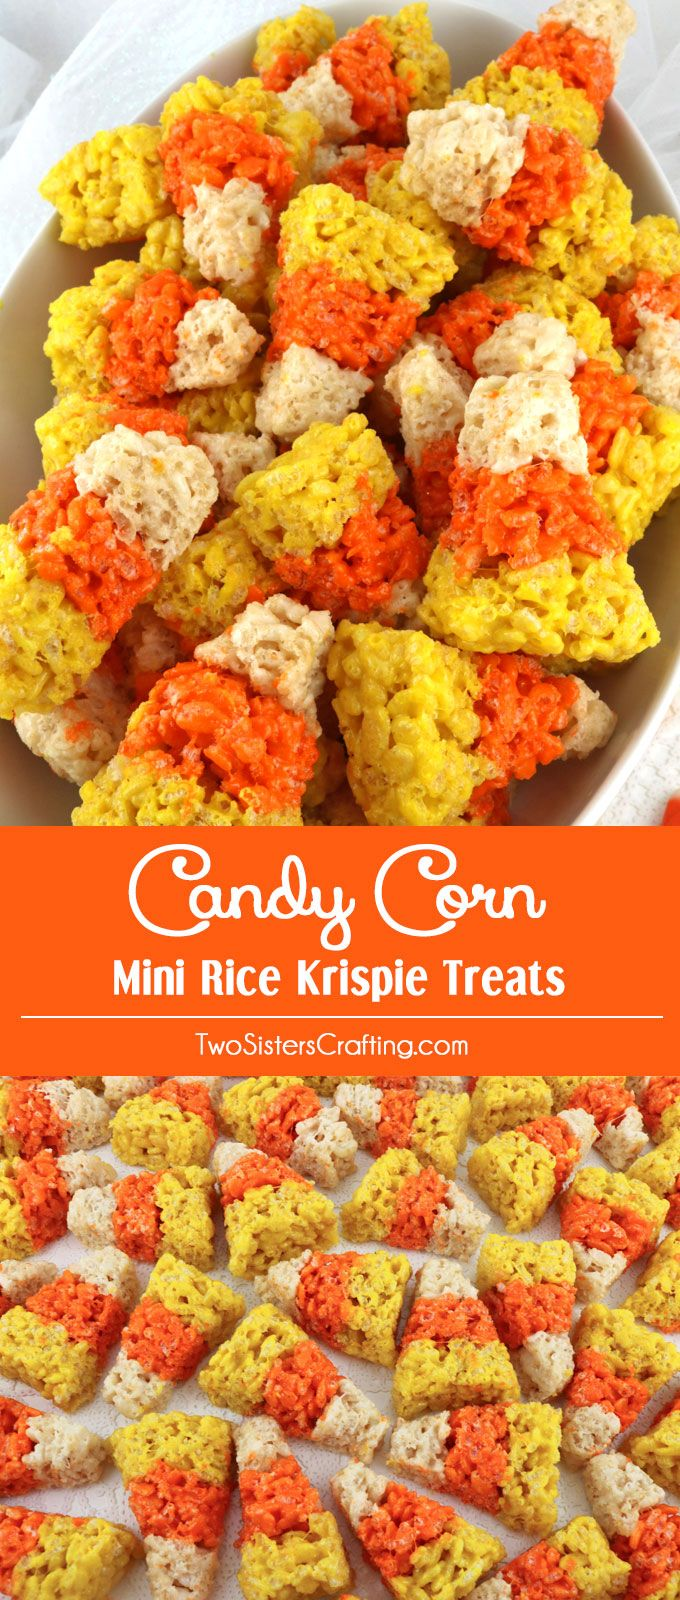 Our colorful and festive Candy Corn Mini Rice Krispie Treats are adorable, delicious - the perfect Halloween dessert. Easy to make, these super cute Candy Corn Treats look just like iconic Halloween Candy Corn. They would be great at a Halloween Party. Pin this delicious Halloween snack for later and follow us for more great Halloween Food Ideas.